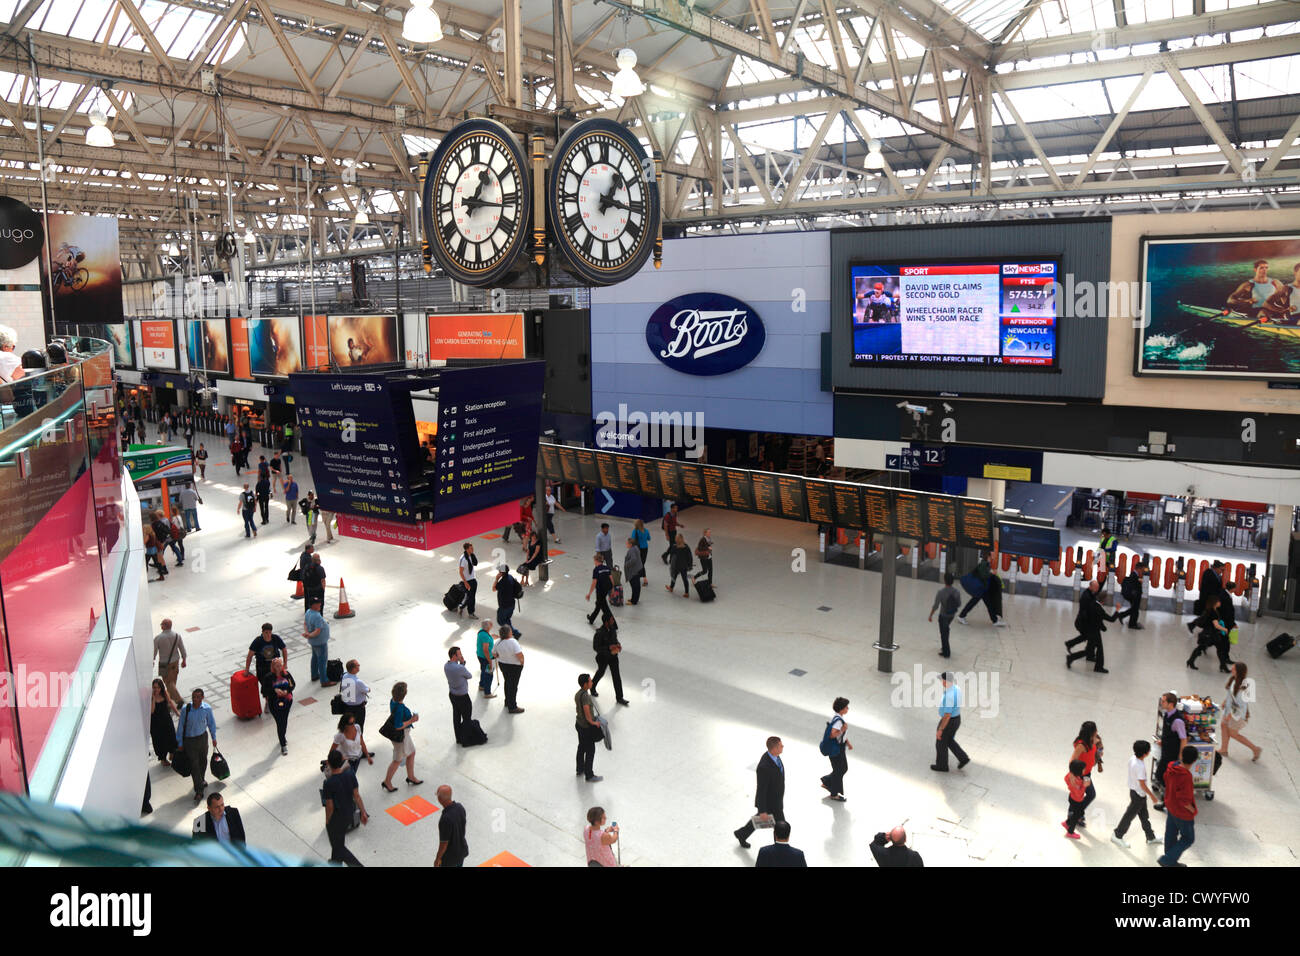 Waterloo Railway Station concourse in London UK. - Stock Image